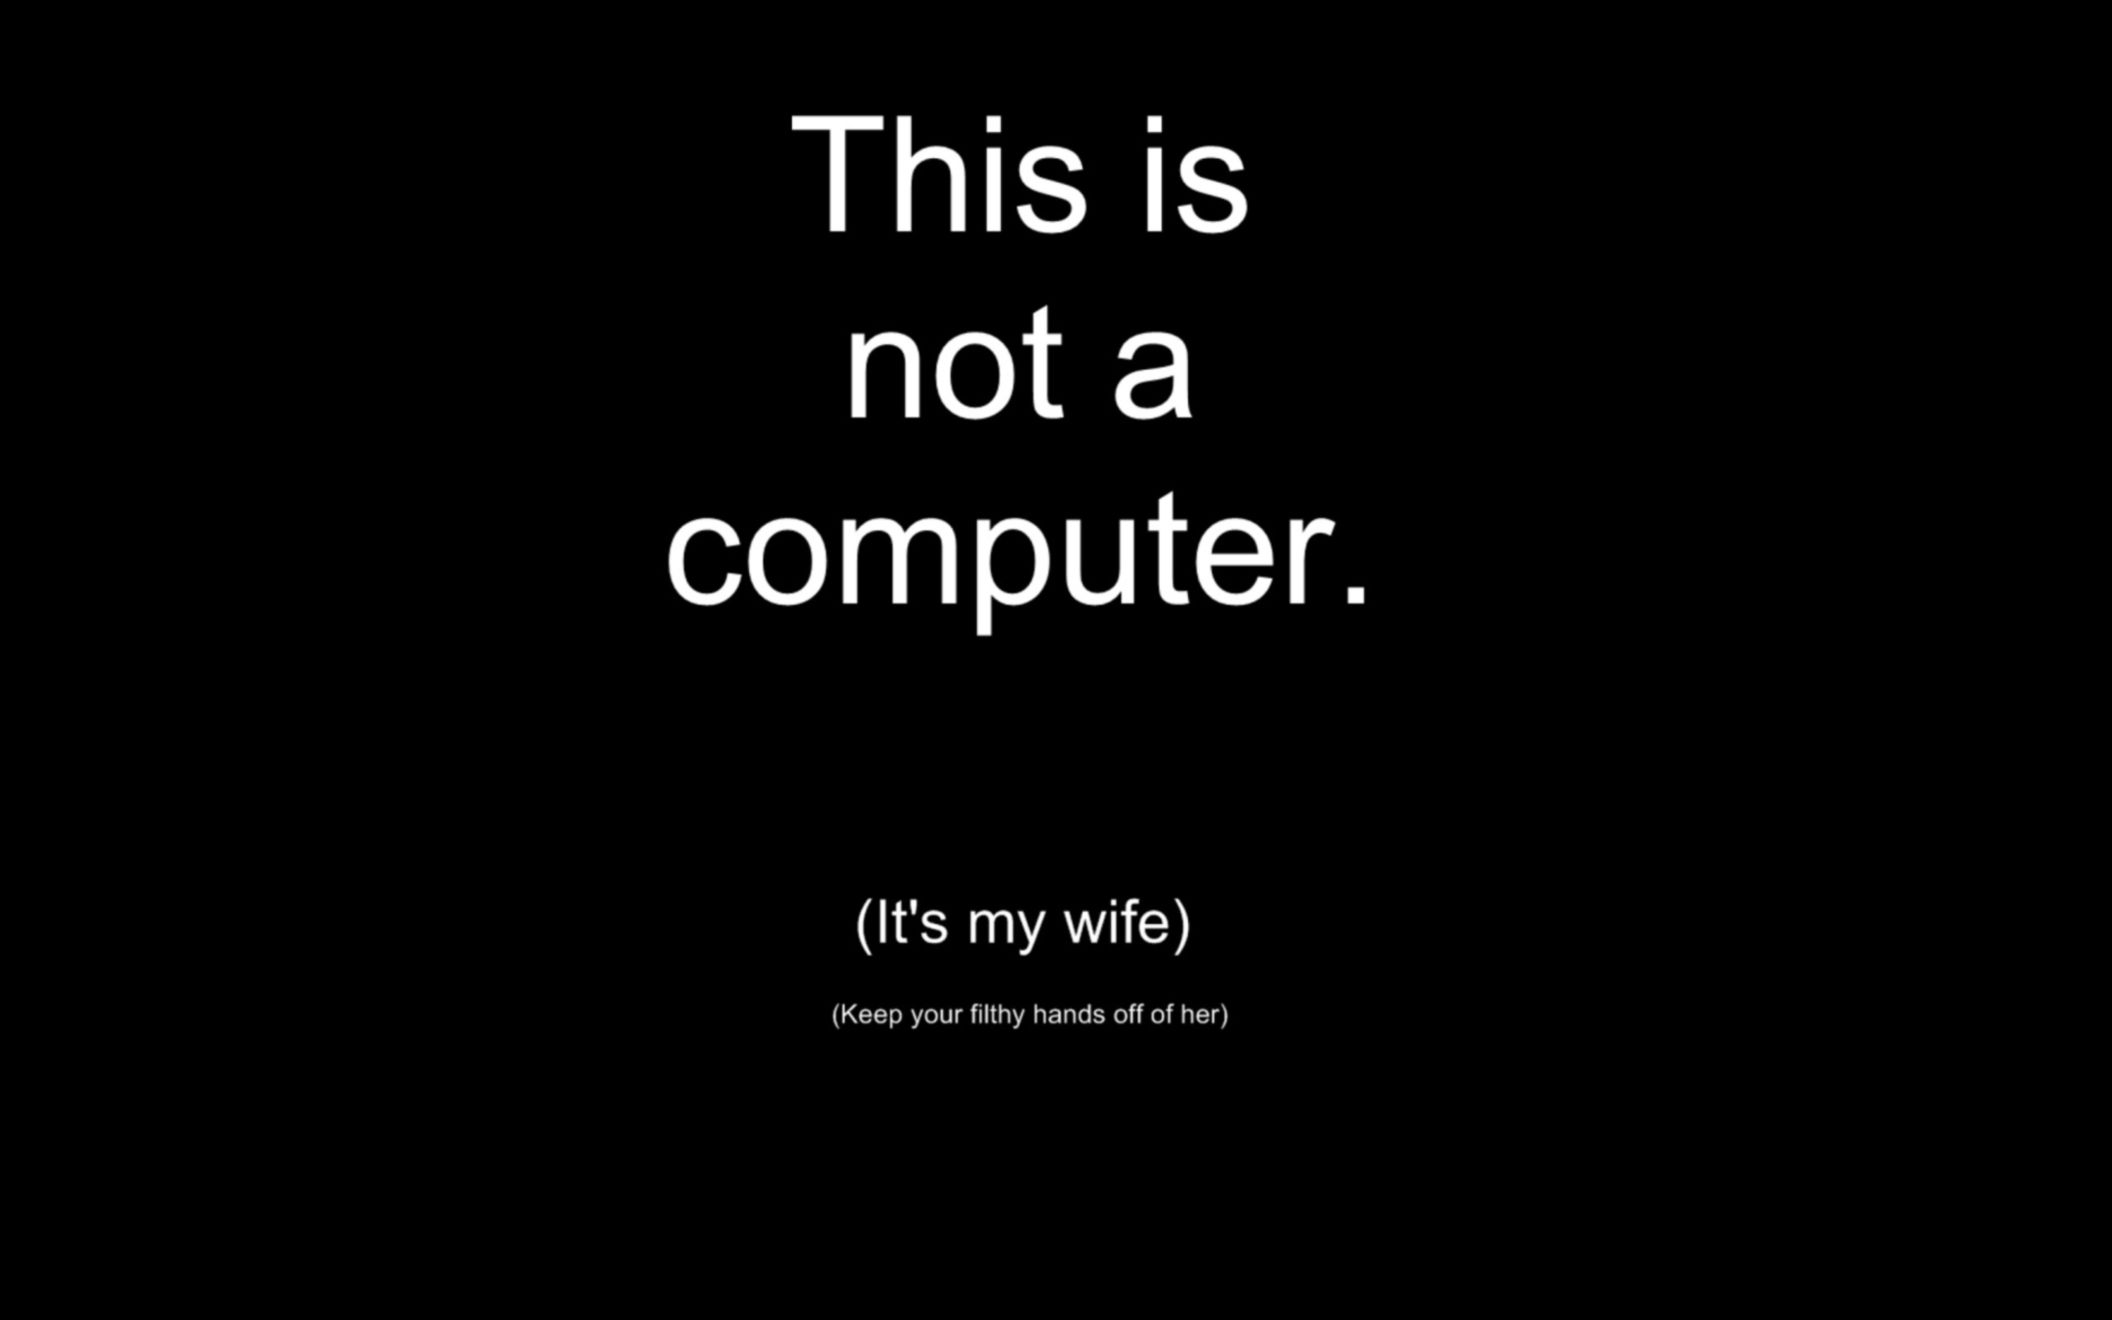 wife computer funny wallpaper desktop hd wallpaper download free